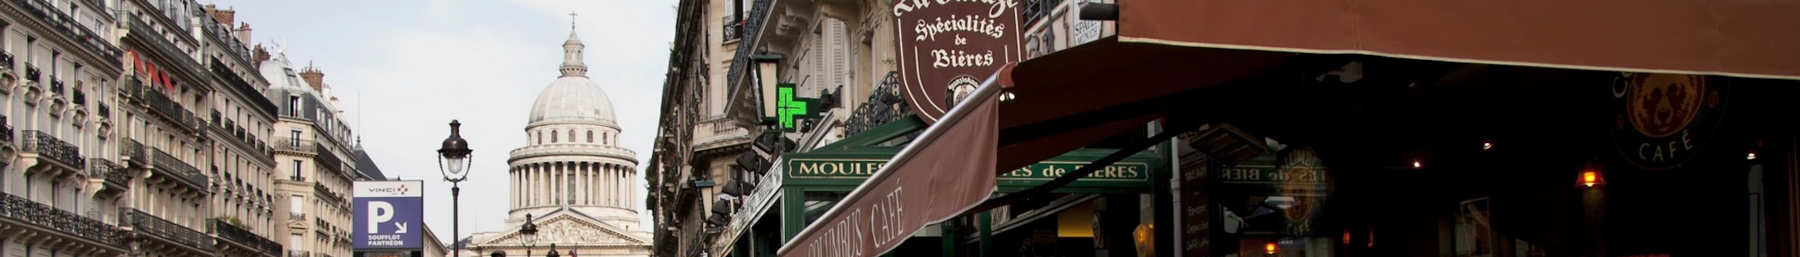 Paris 5e Wikivoyage Banner.png